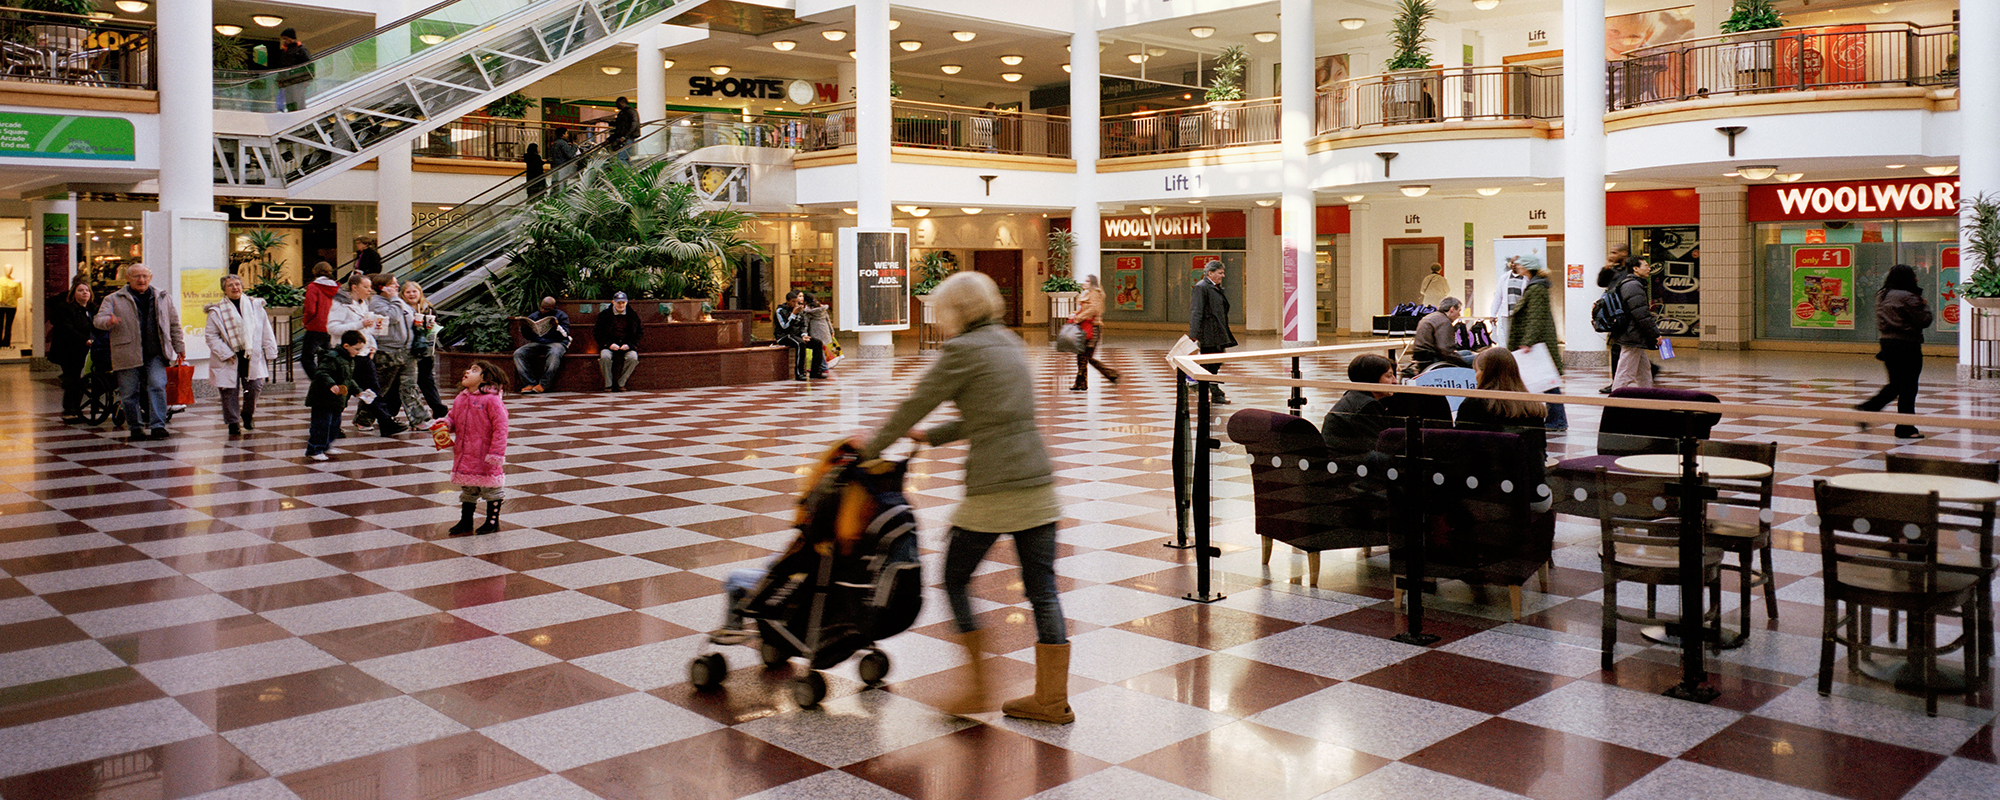 Arts groups have taken over a furniture store at Croydons Whitgift Centre. Photo: Alamy